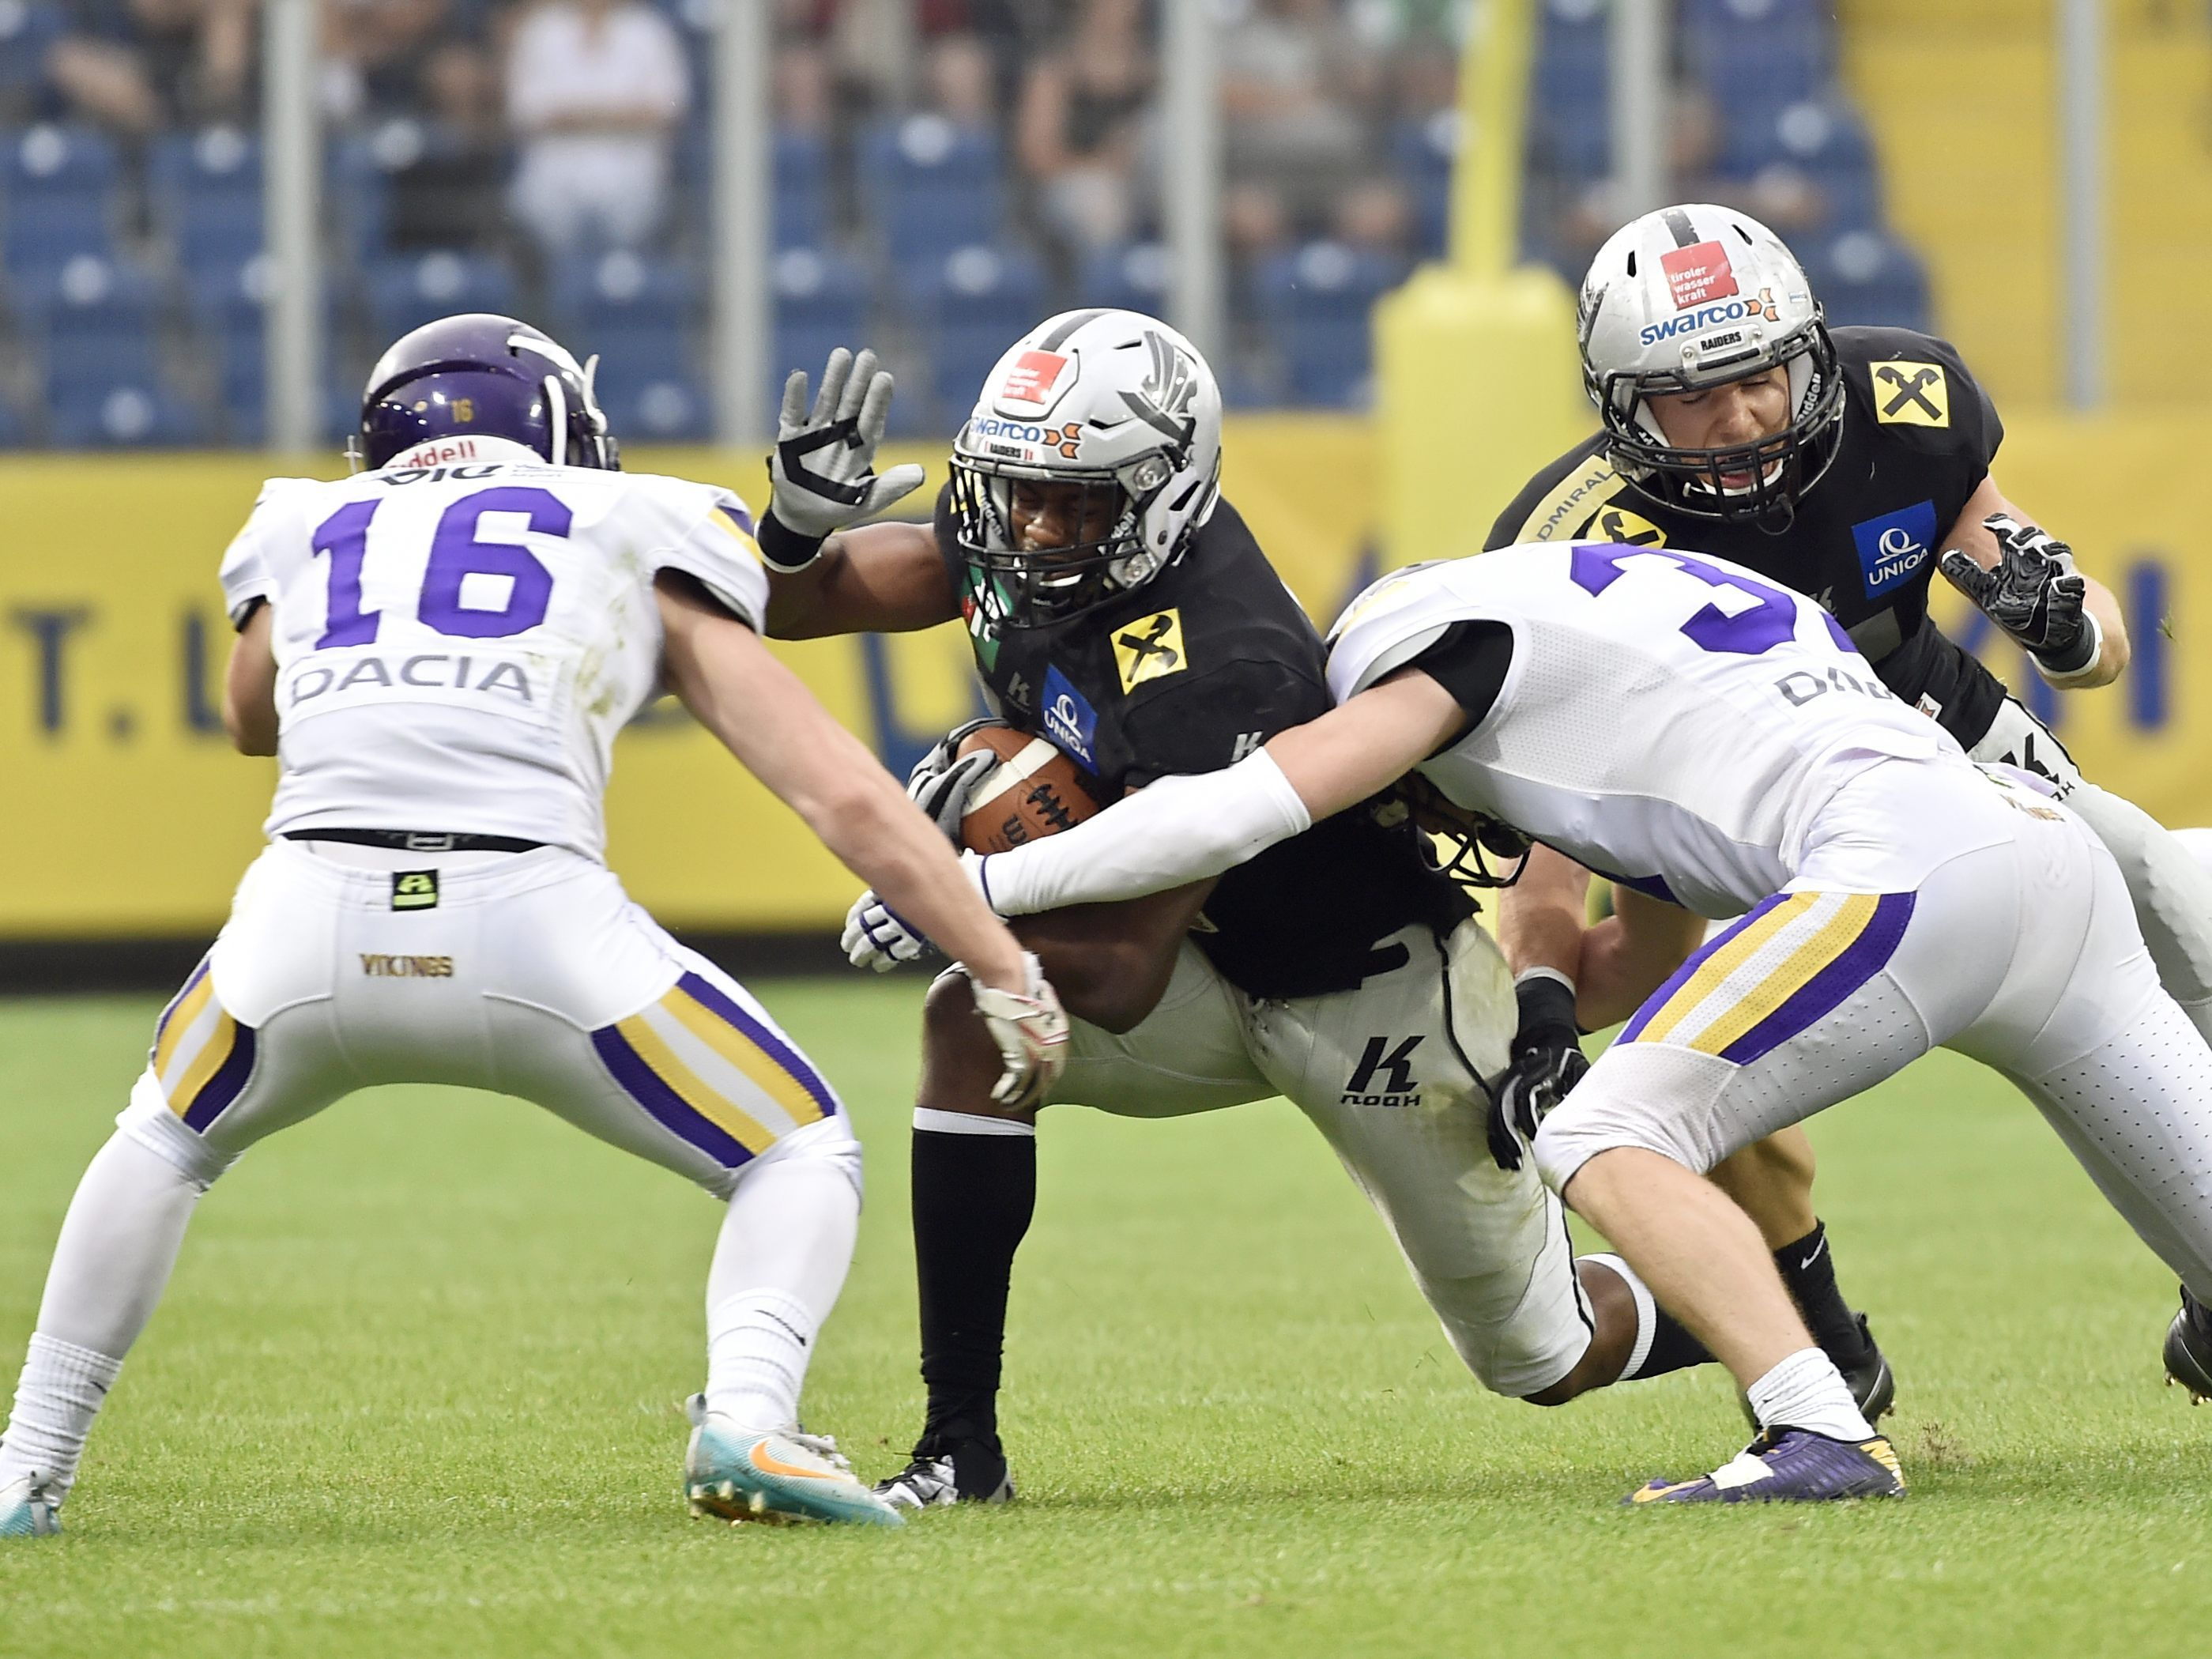 Vienna Vikings und Swarco Raiders in der Austrian Bowl 2019.